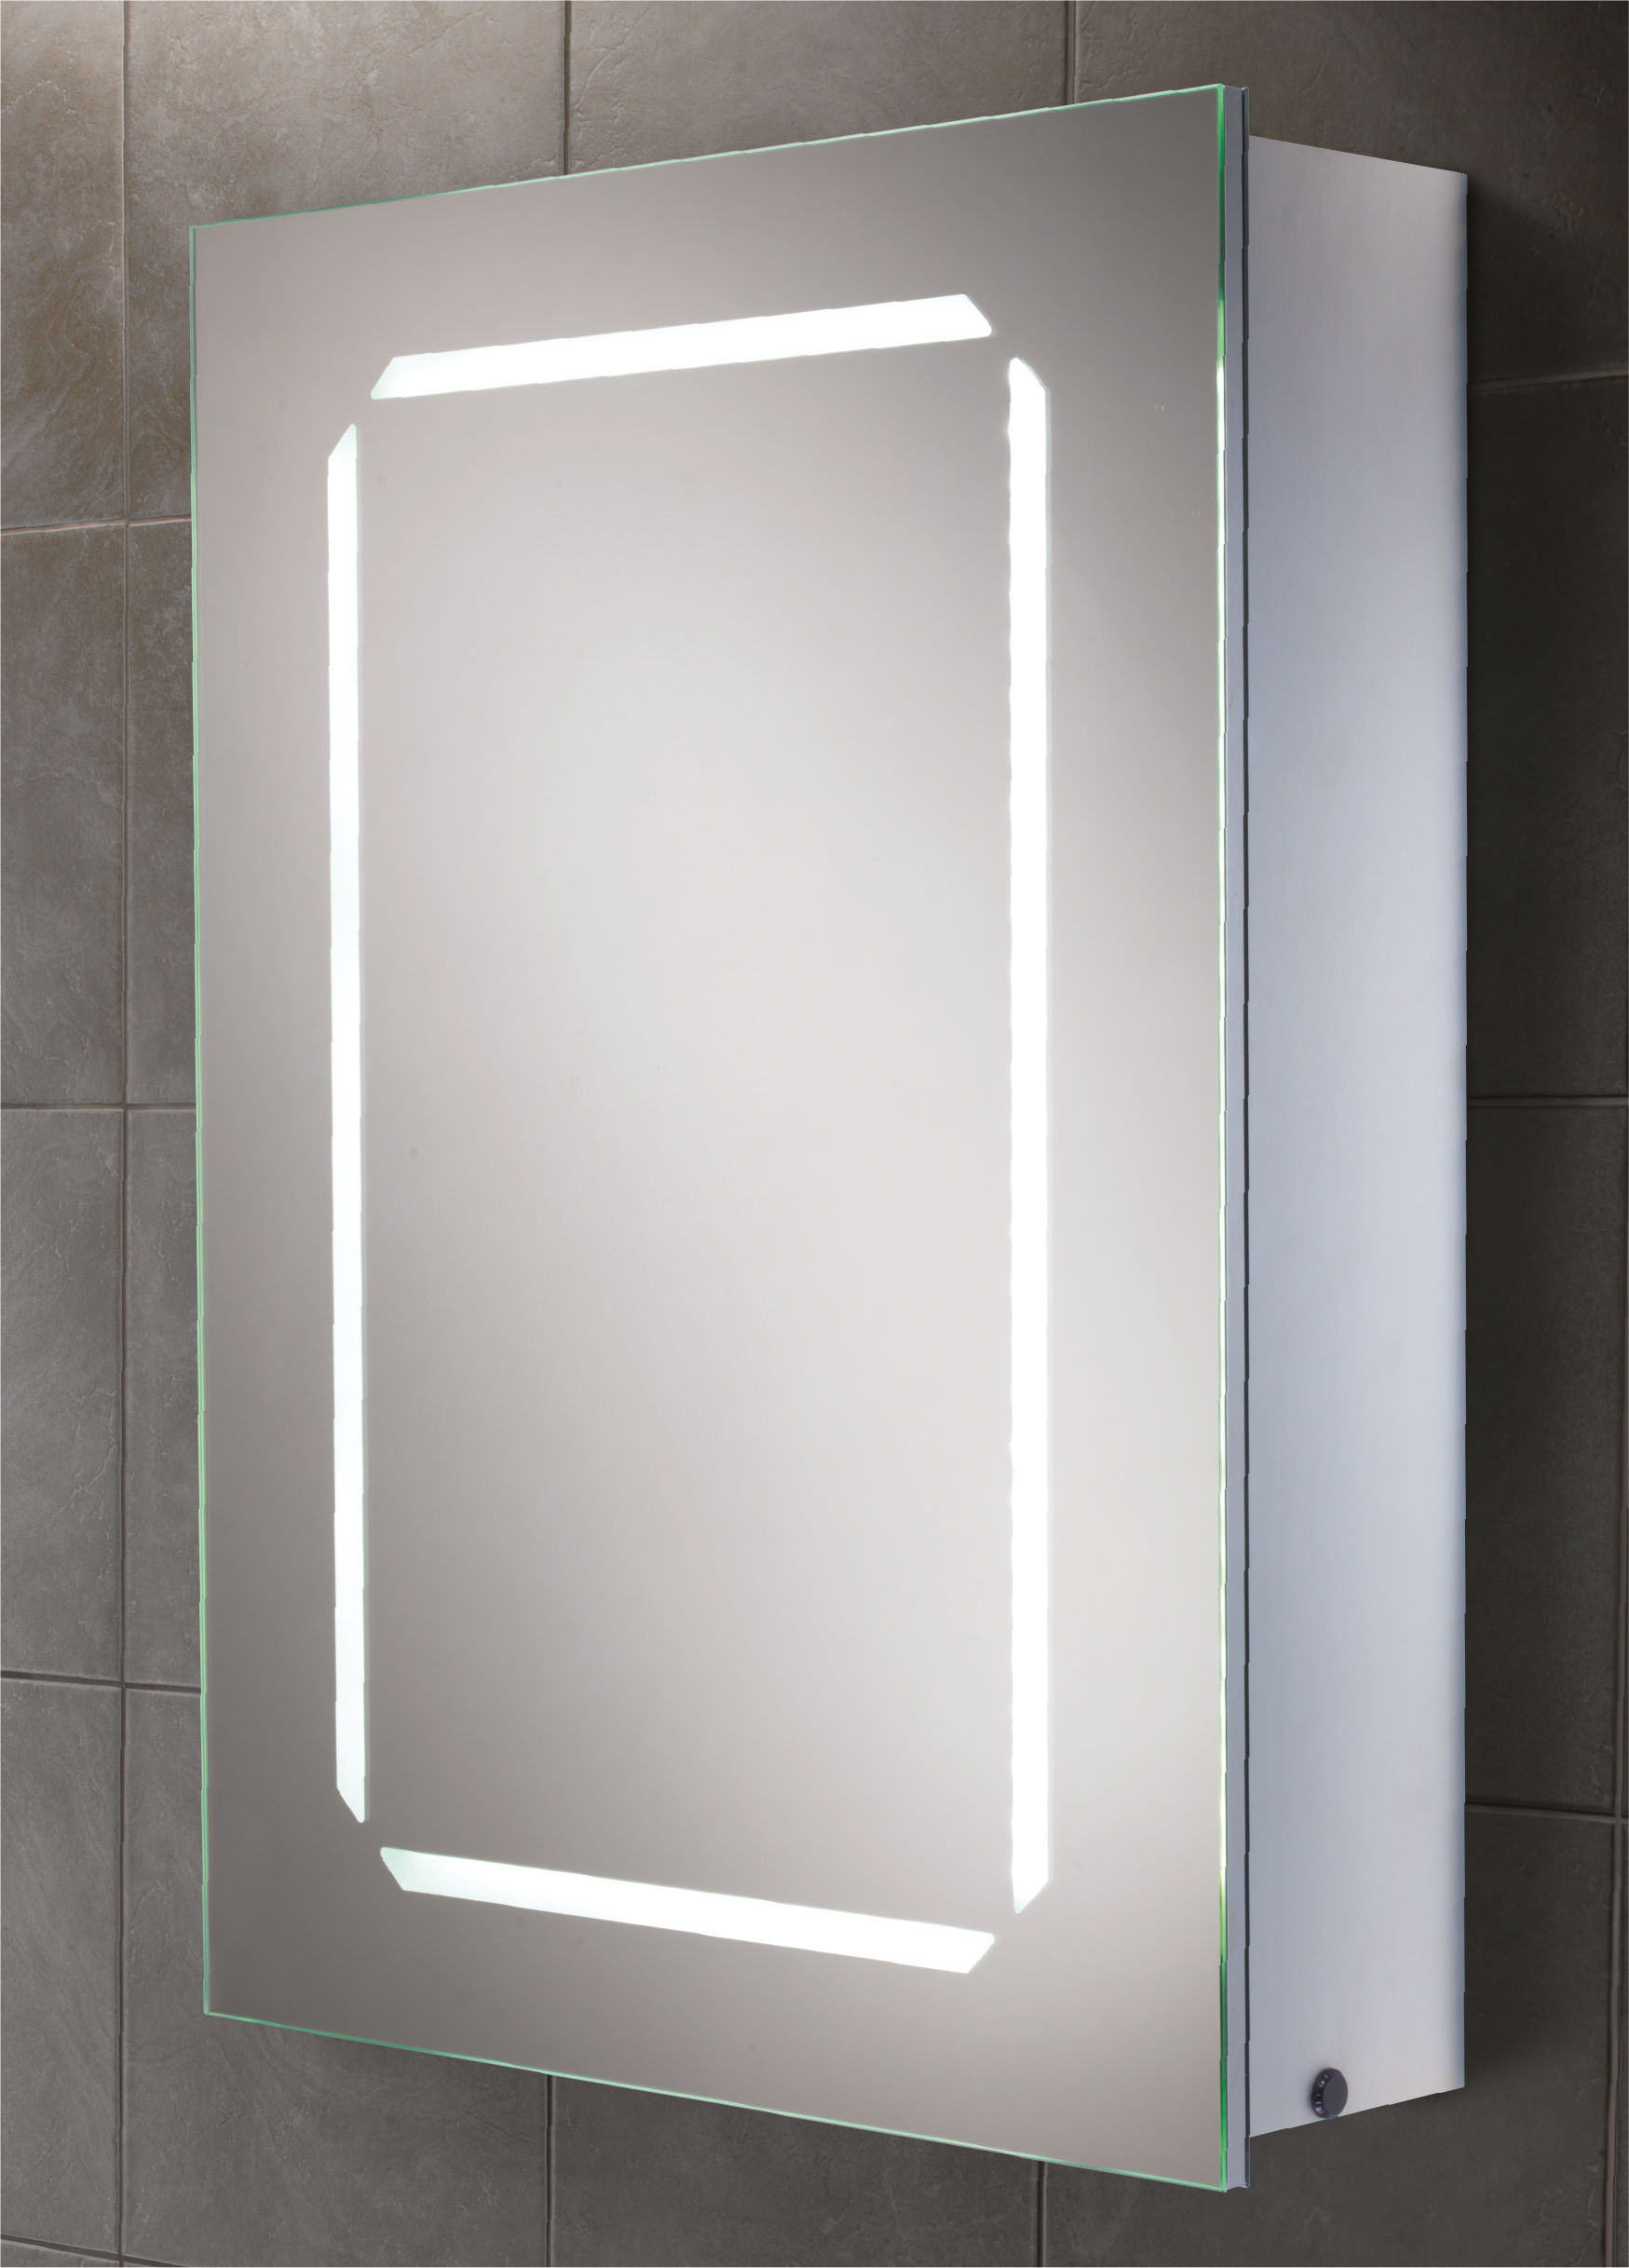 Hib cosmic steam free led back lit aluminium mirrored for Bathroom cabinets led